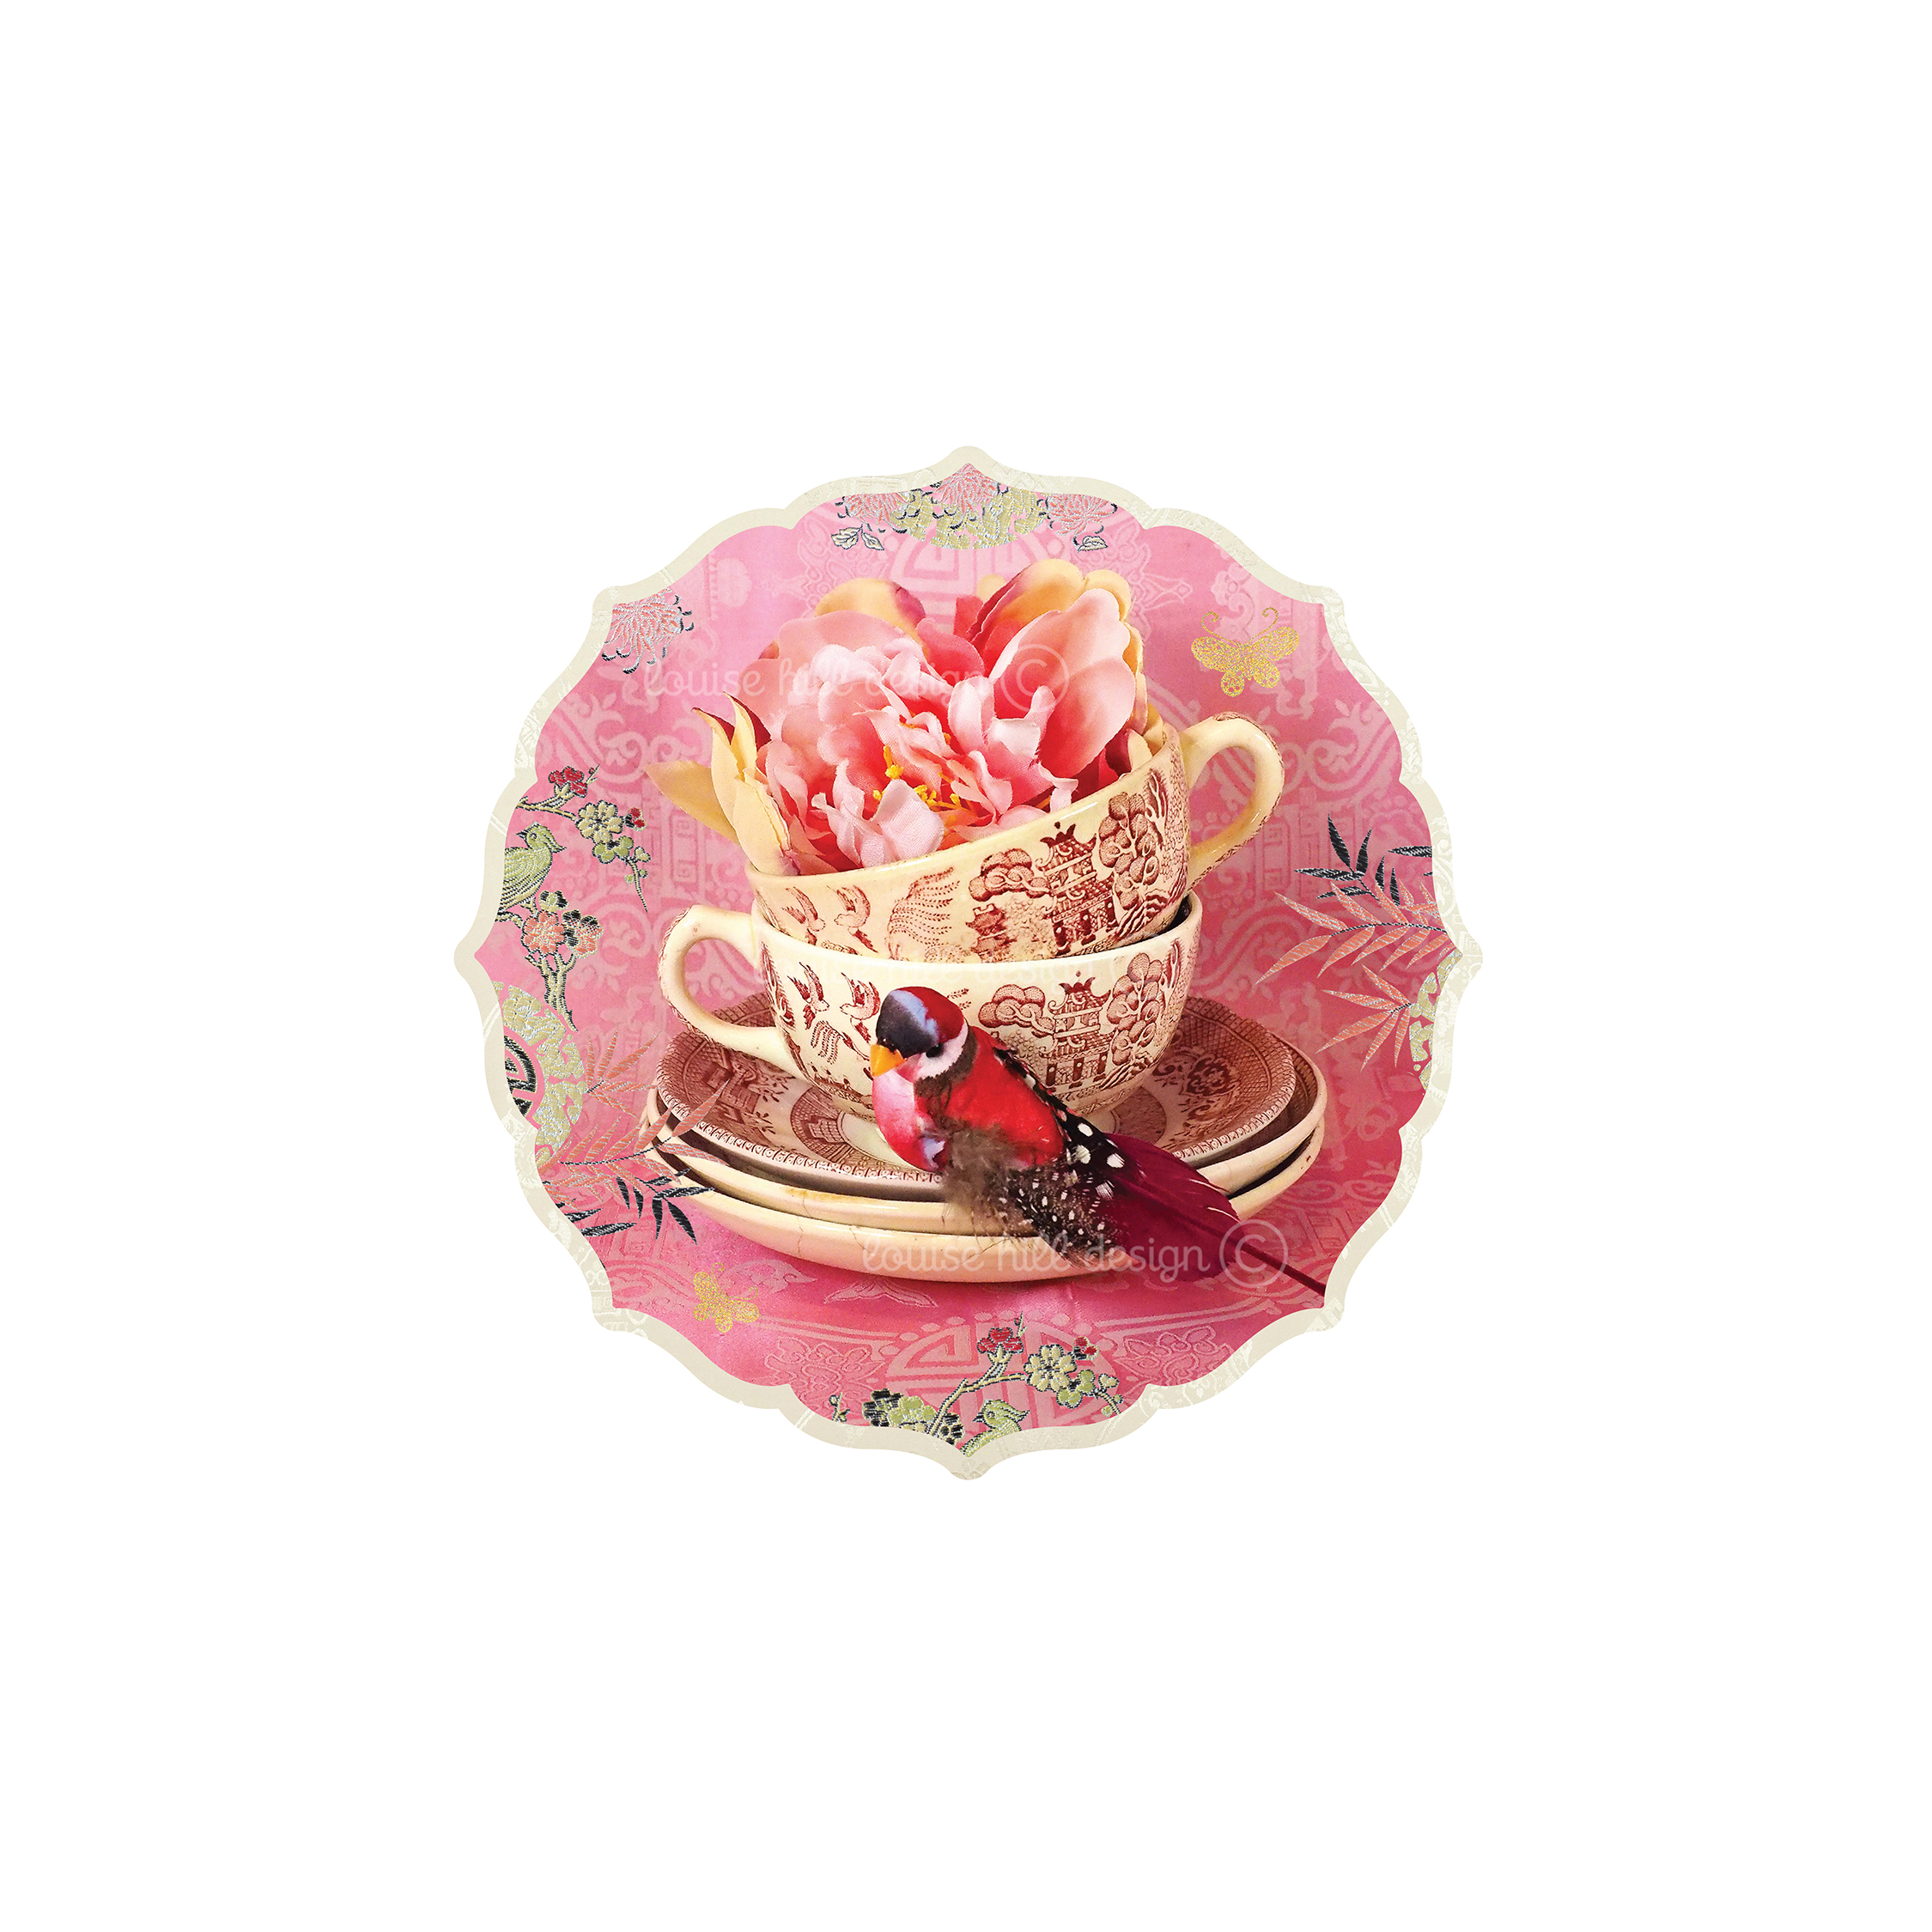 LITTLE-PINK-TEACUPS